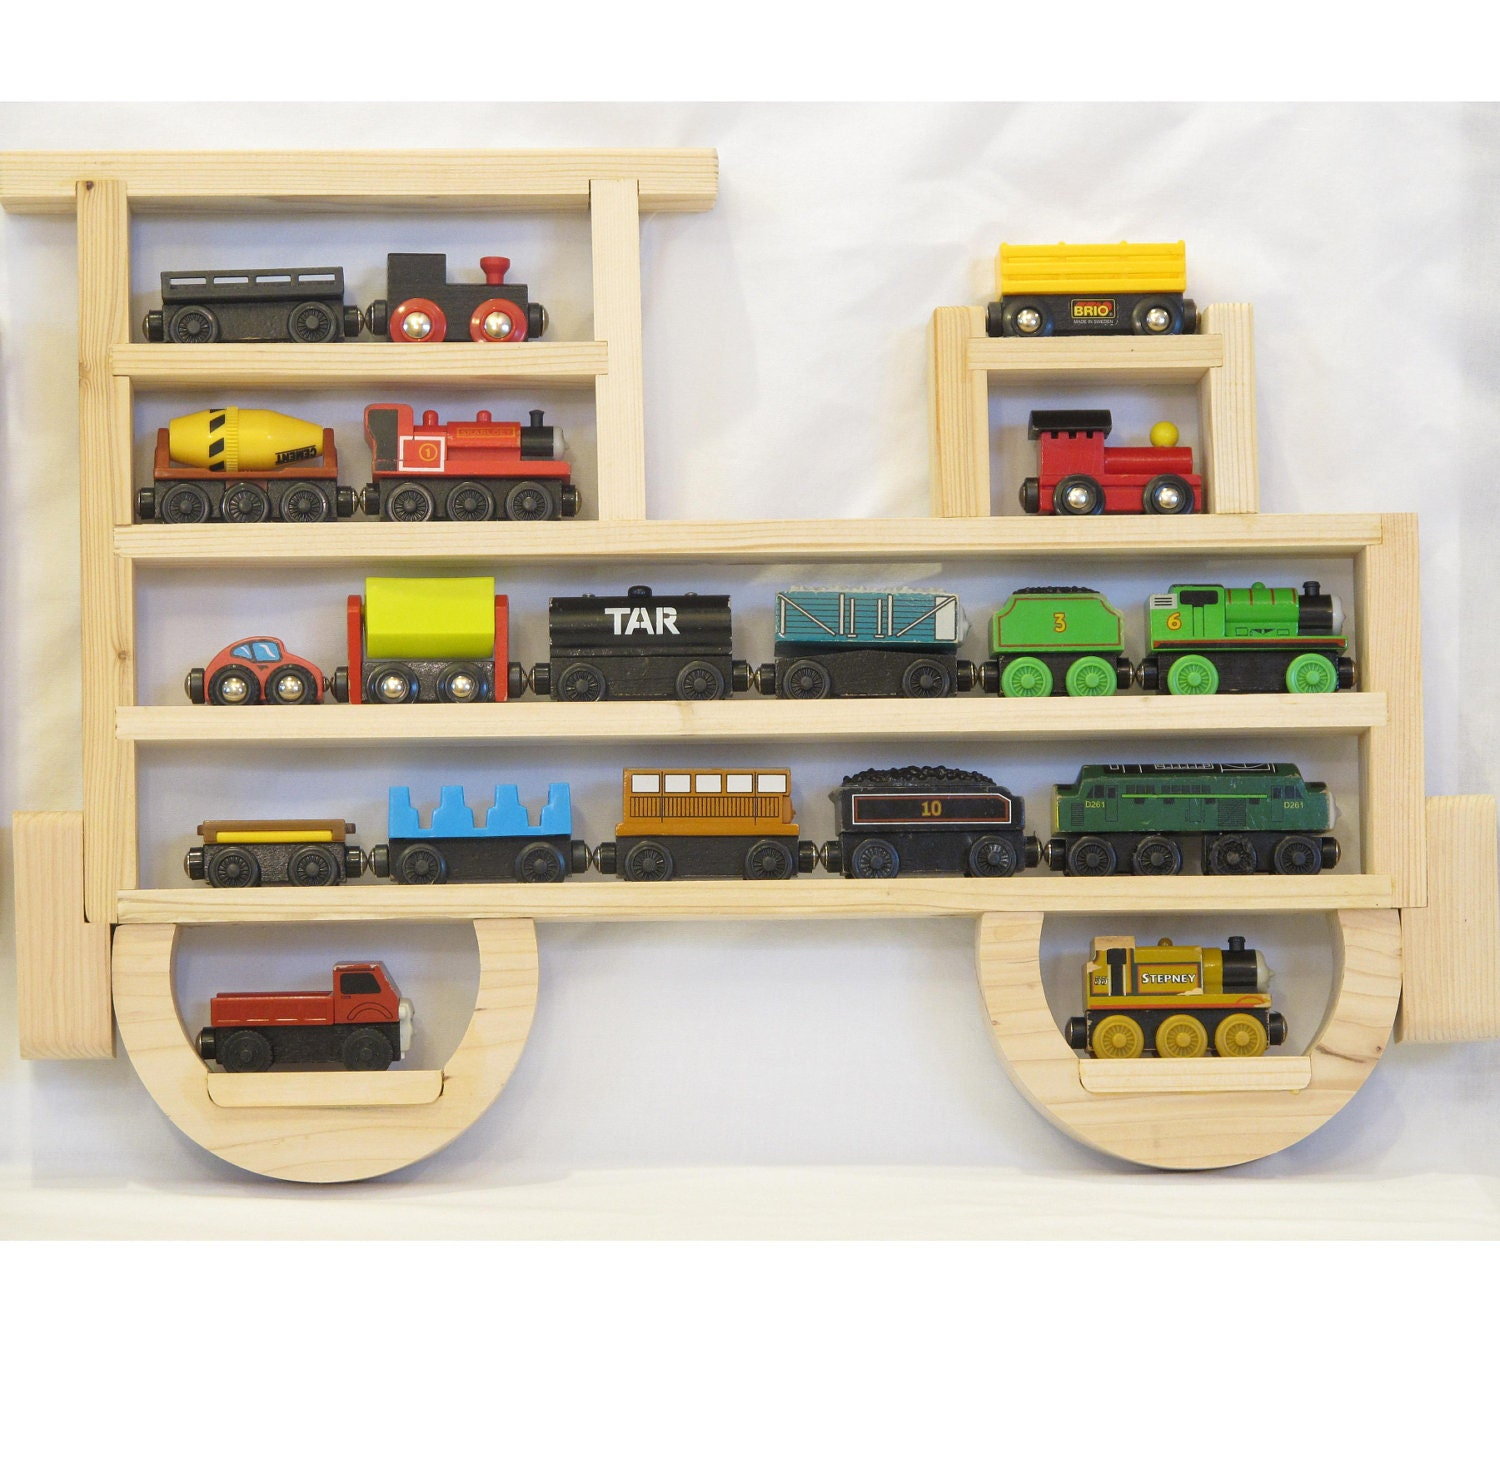 Wooden Wall Storage Train Engine Rack Organizer by WhatAboutWood